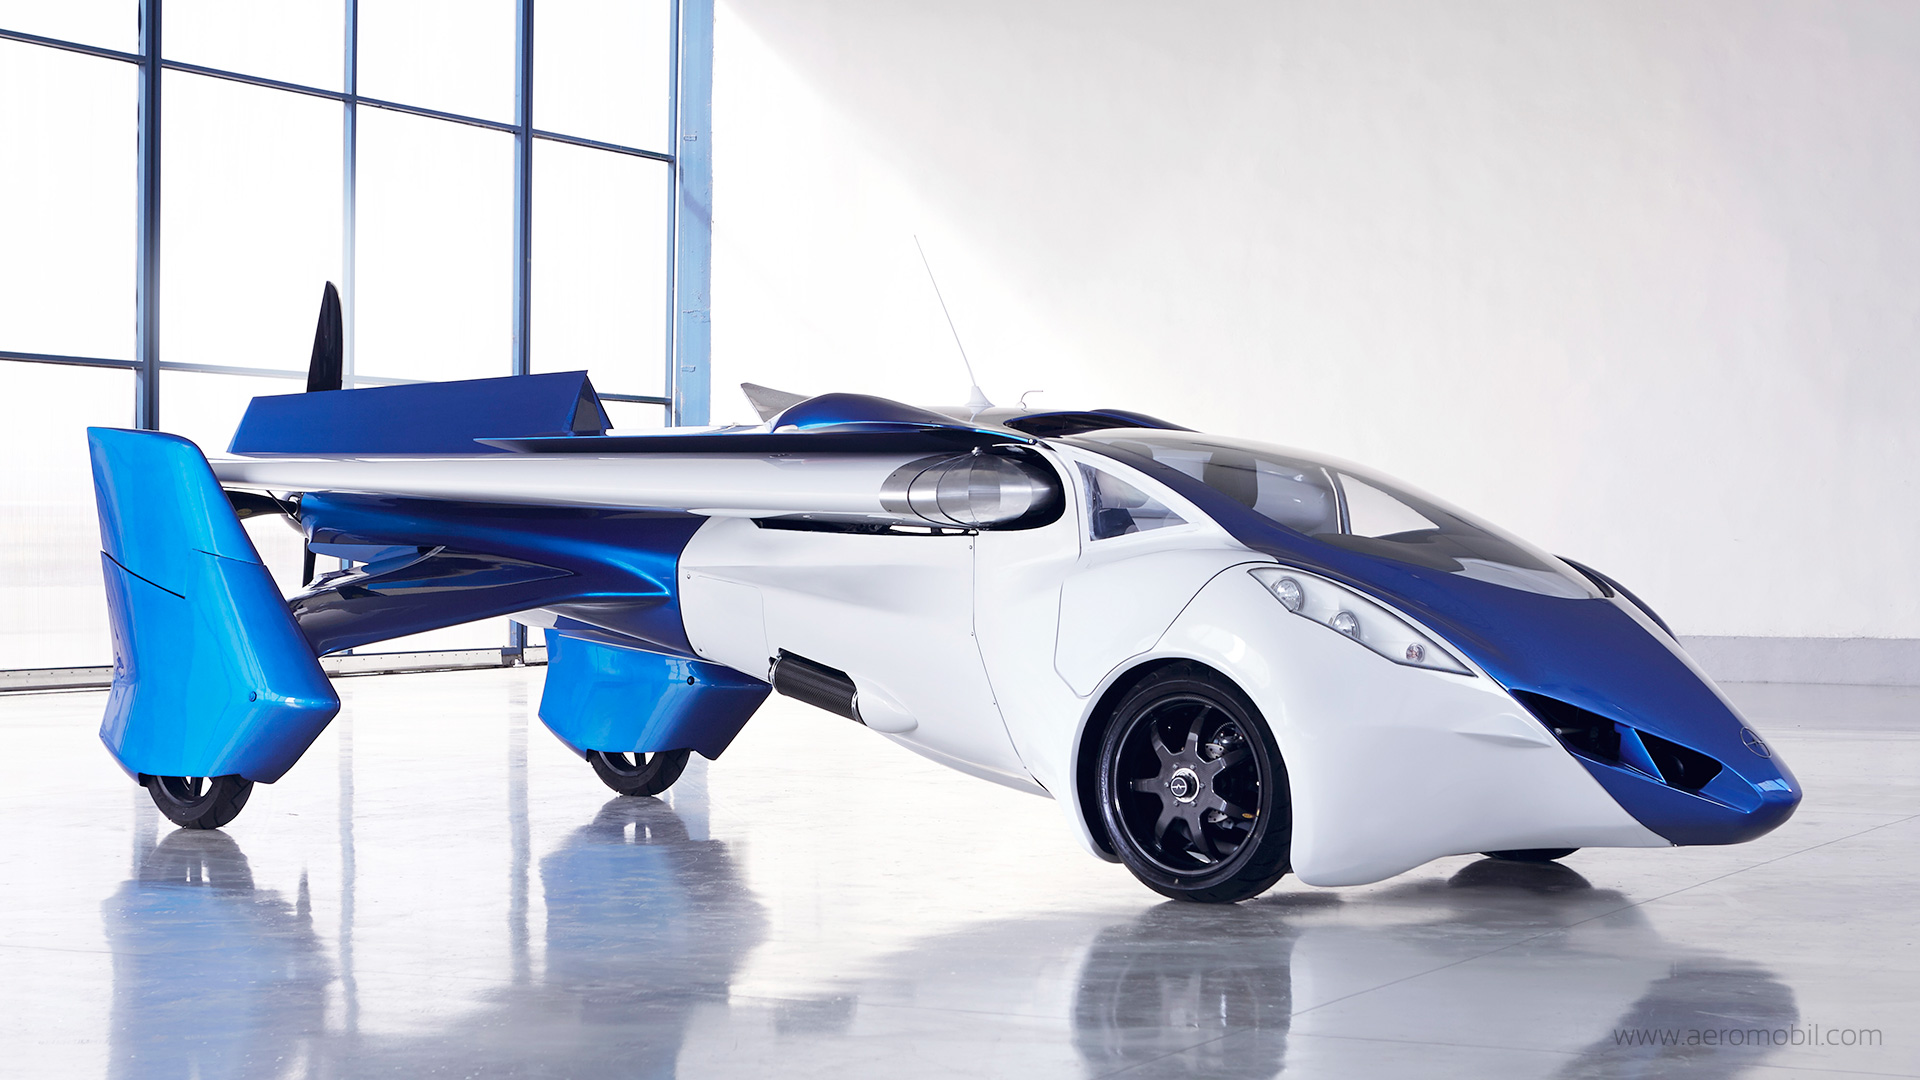 The Aeromobil 3.0 ready to drive. (Aeromobil)